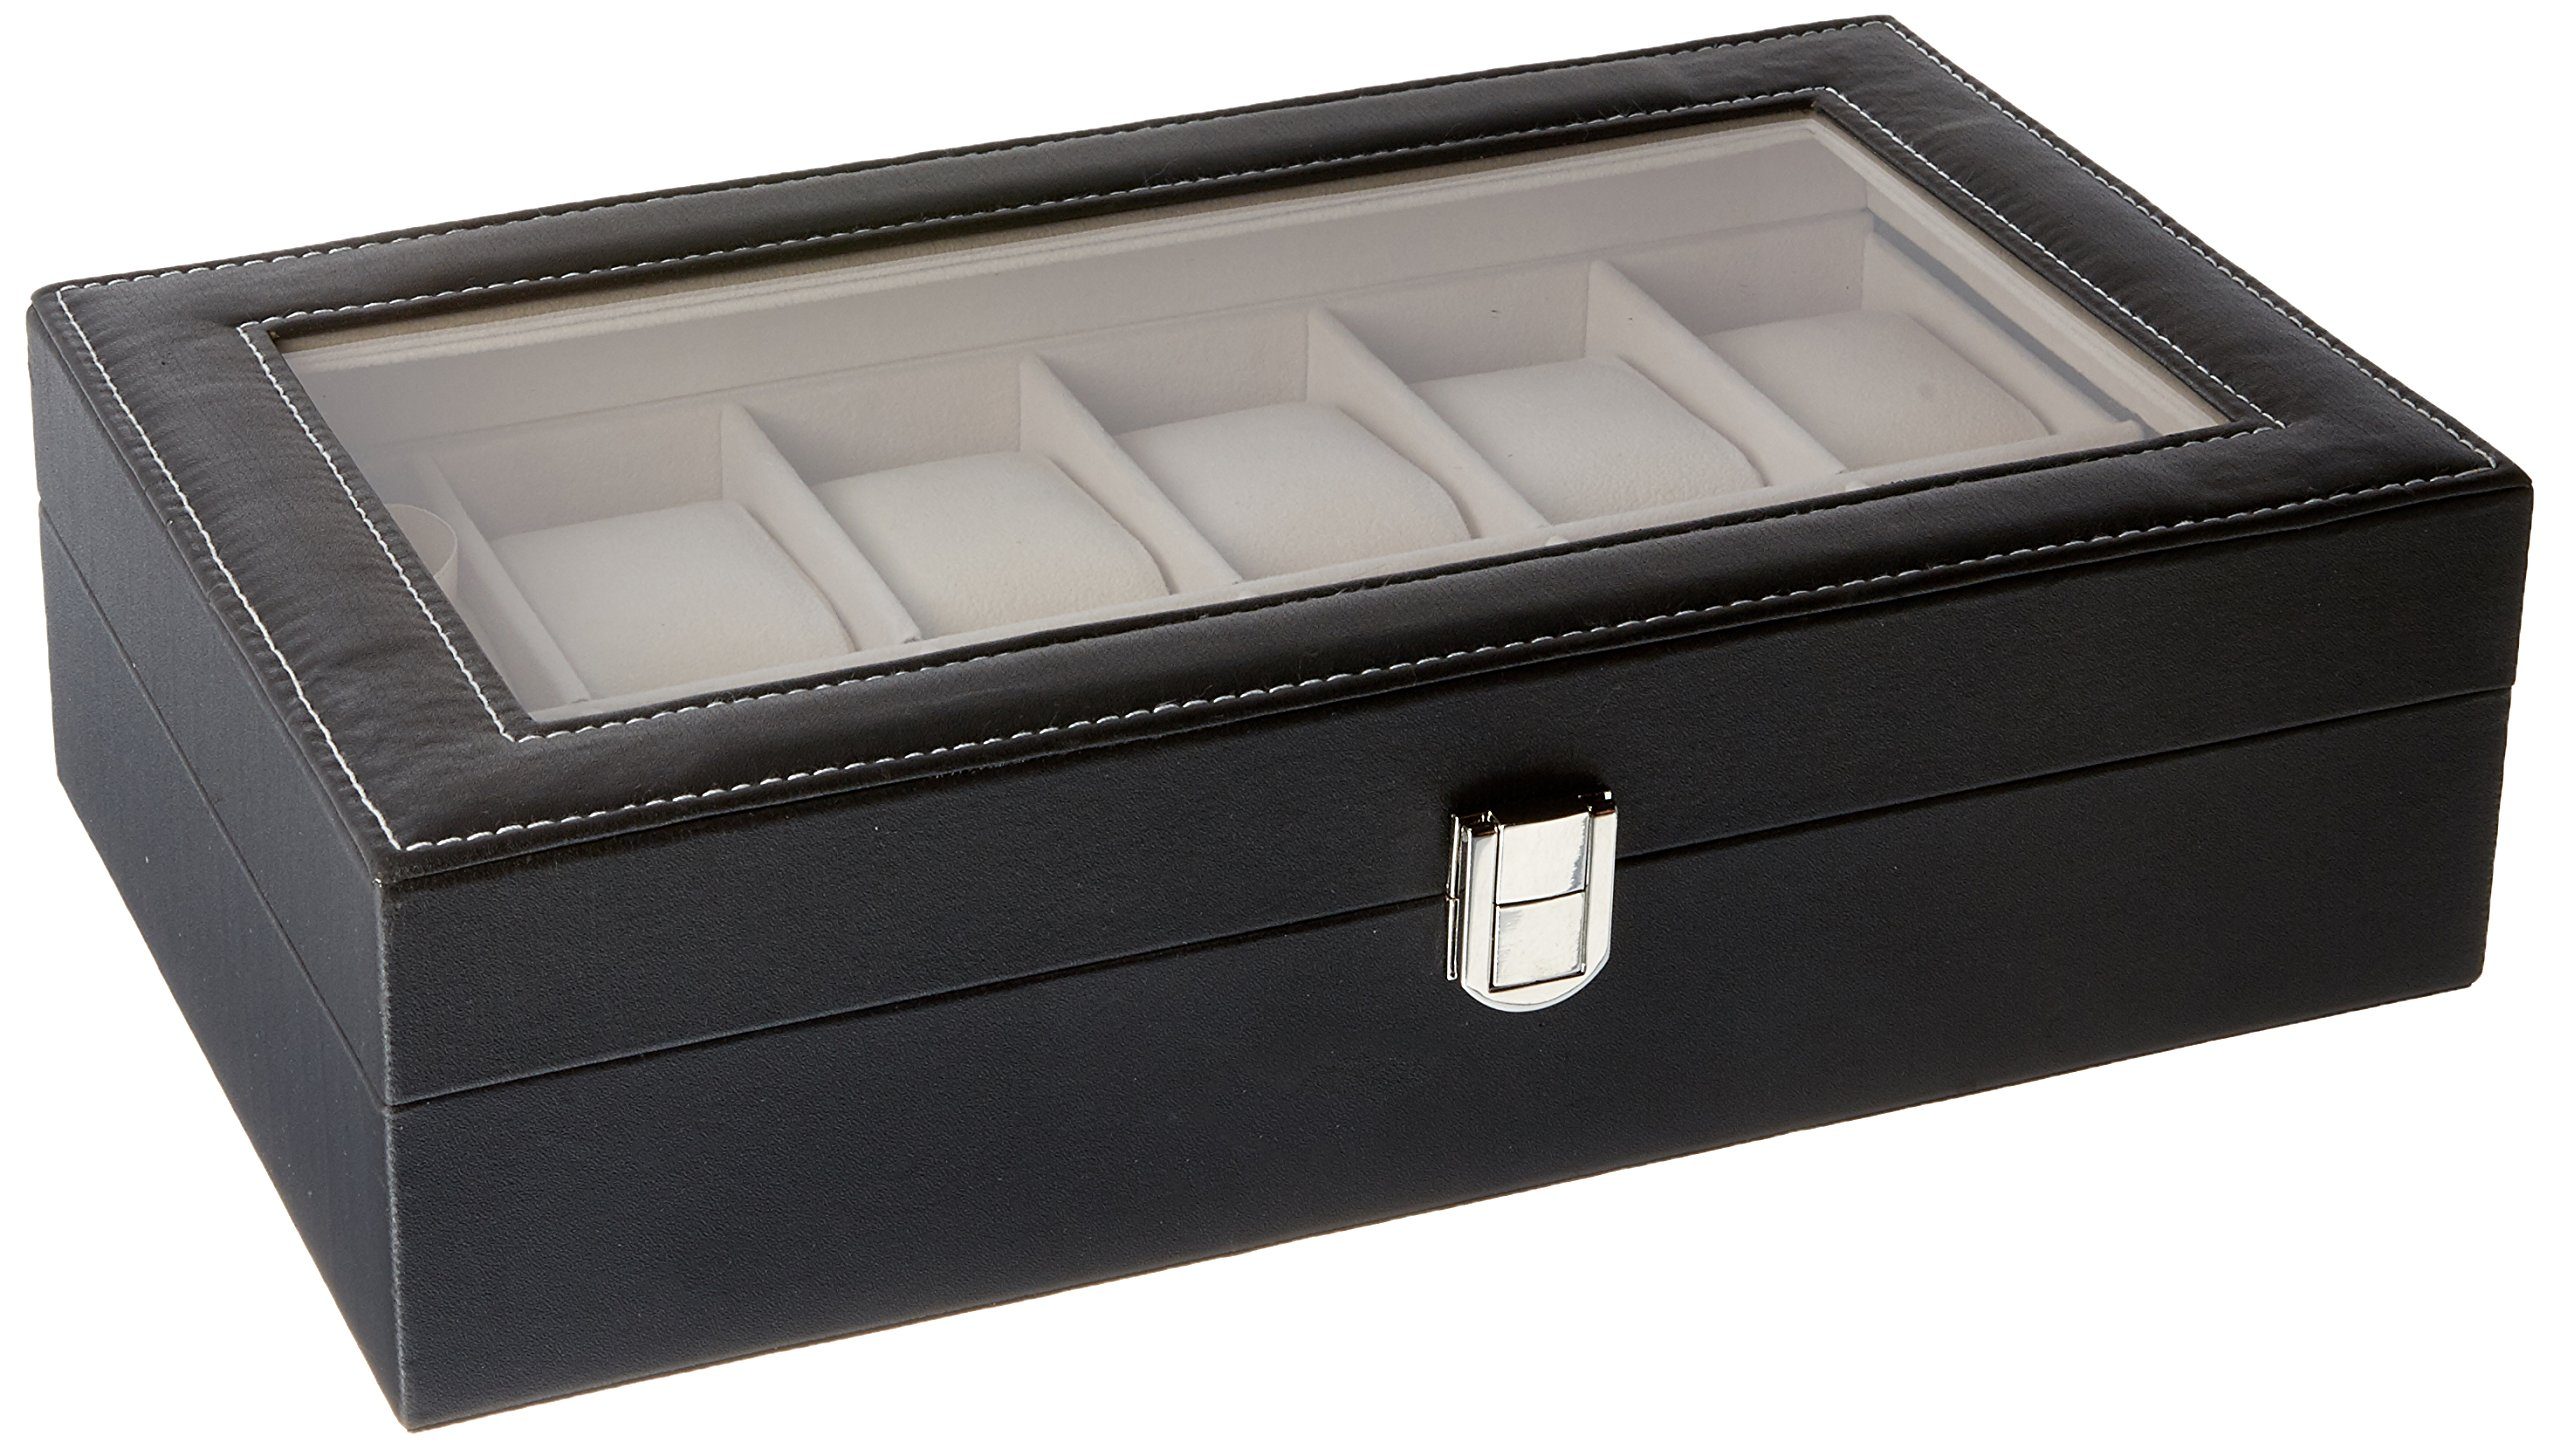 12 Grids Slots Leather Jewelry Watch Display Case Box Storage Holder Organizer